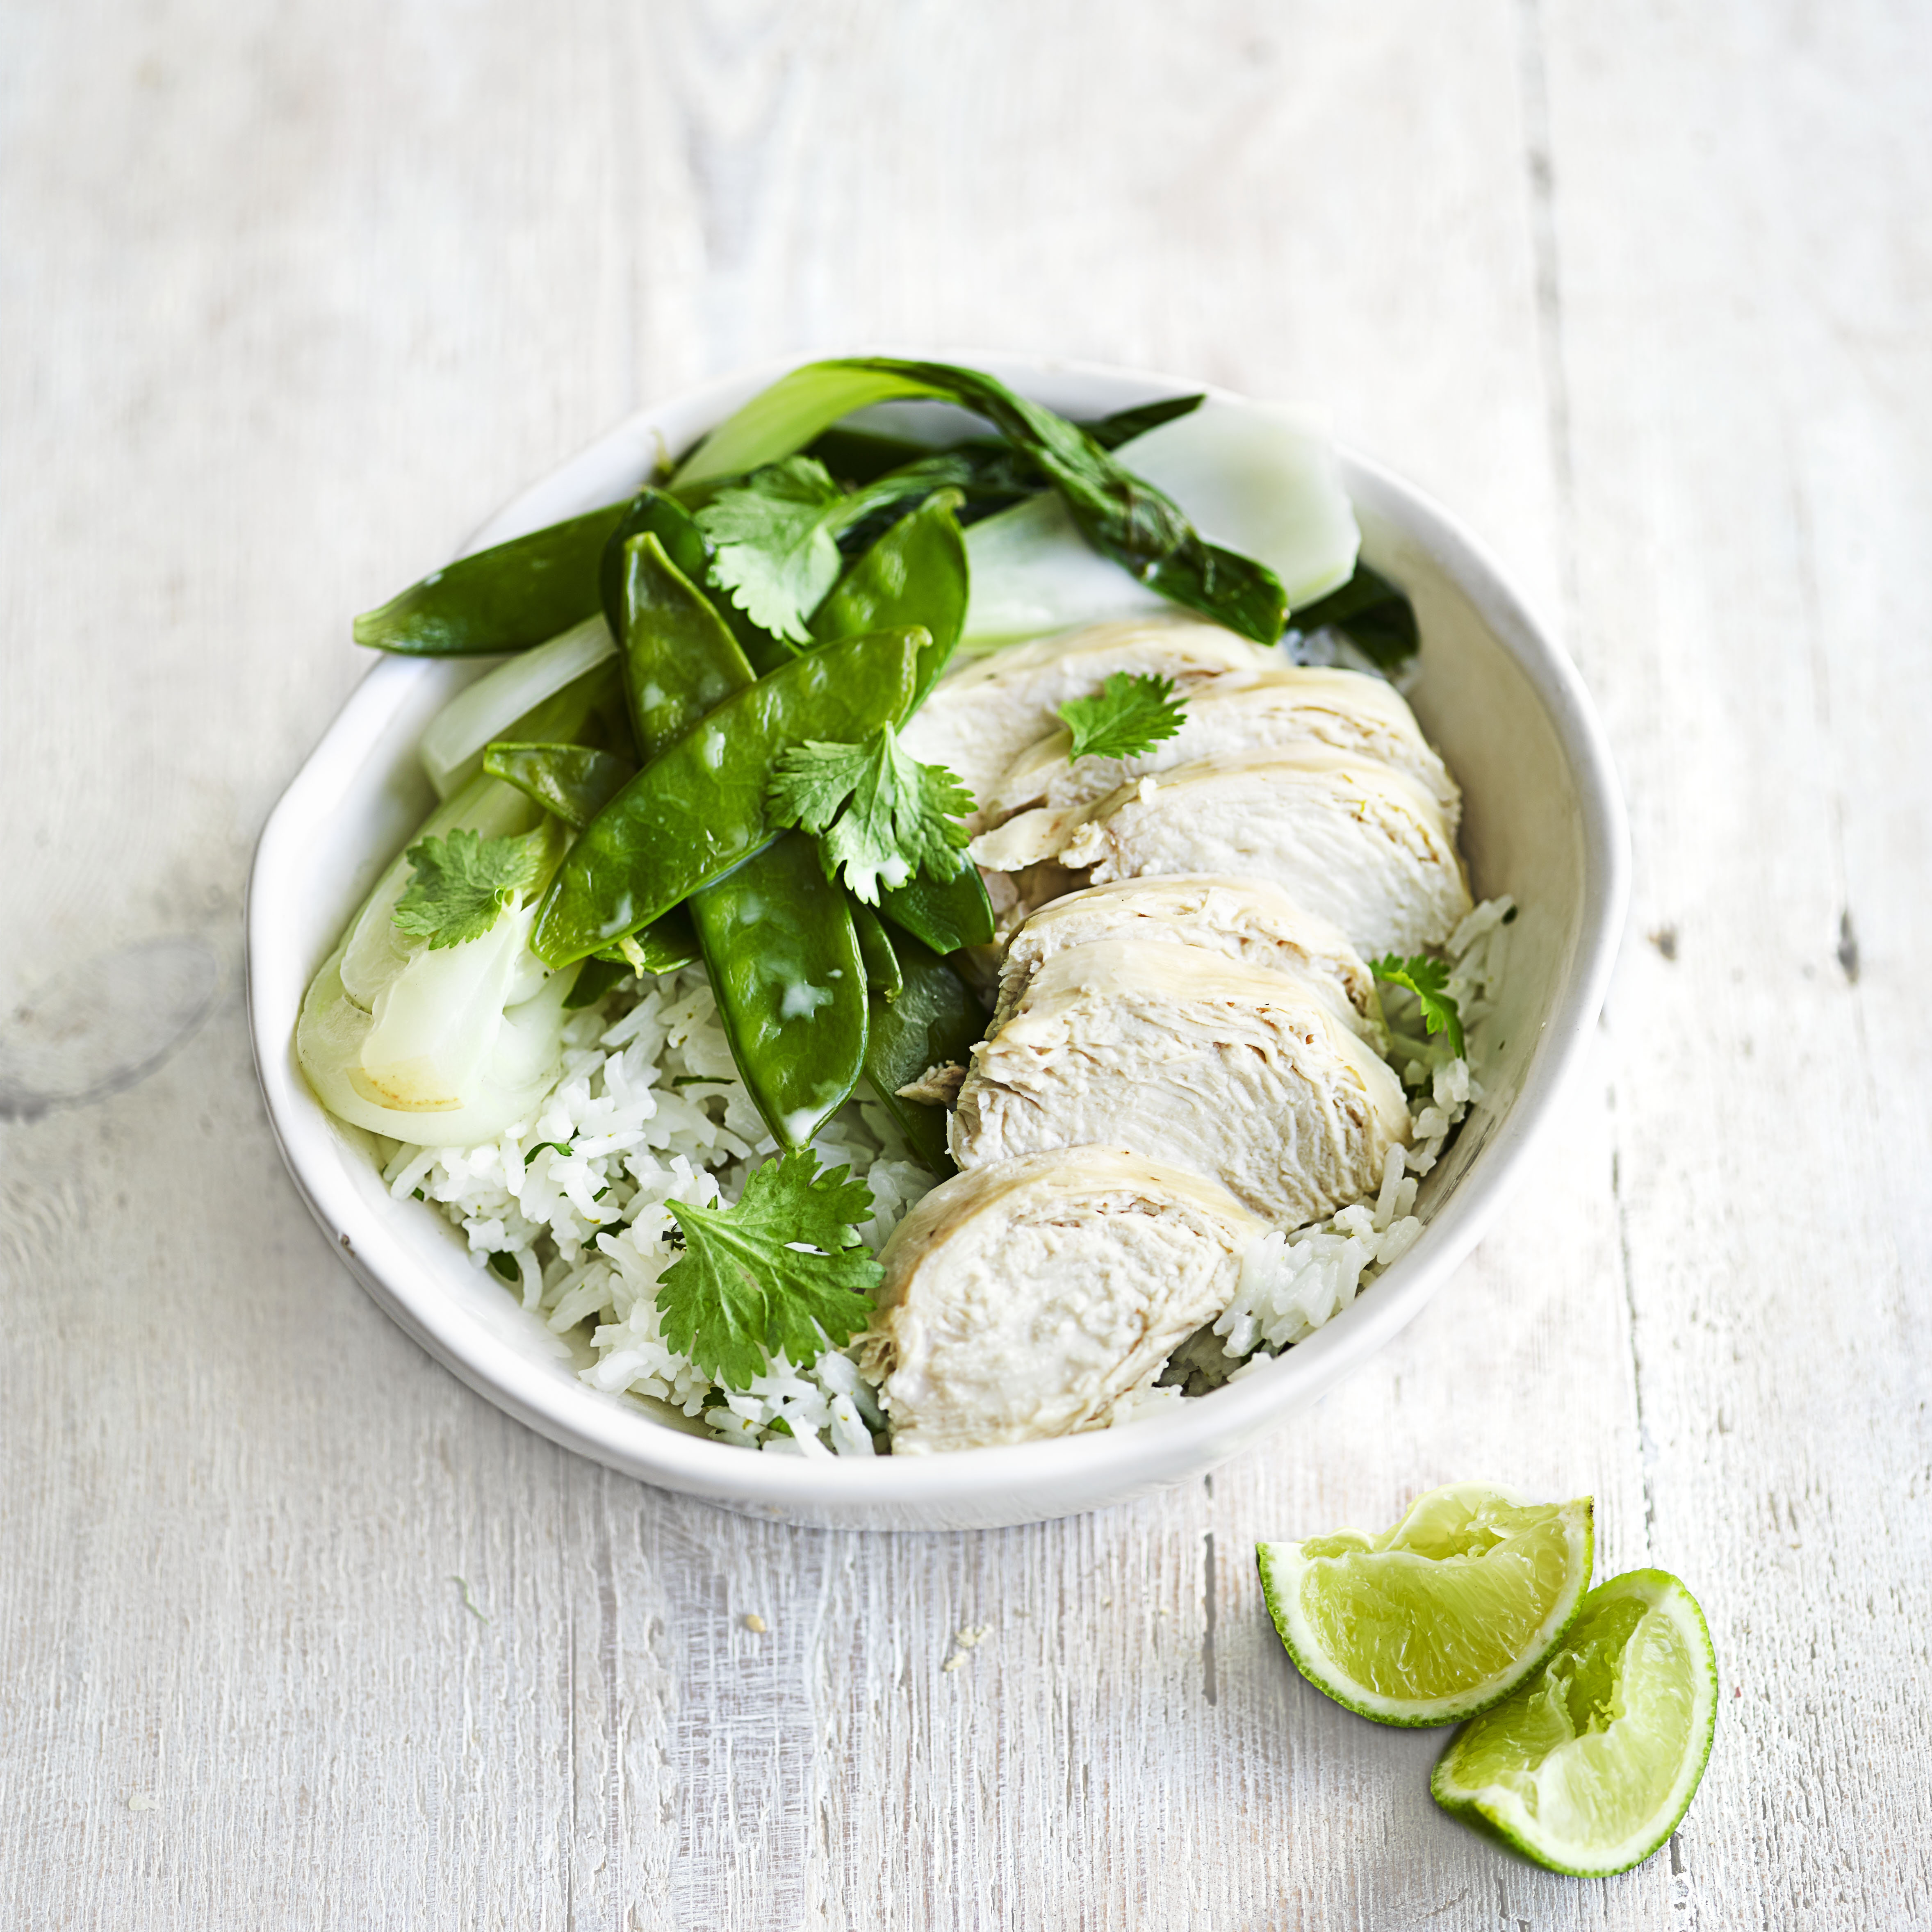 poached chicken calories 100g